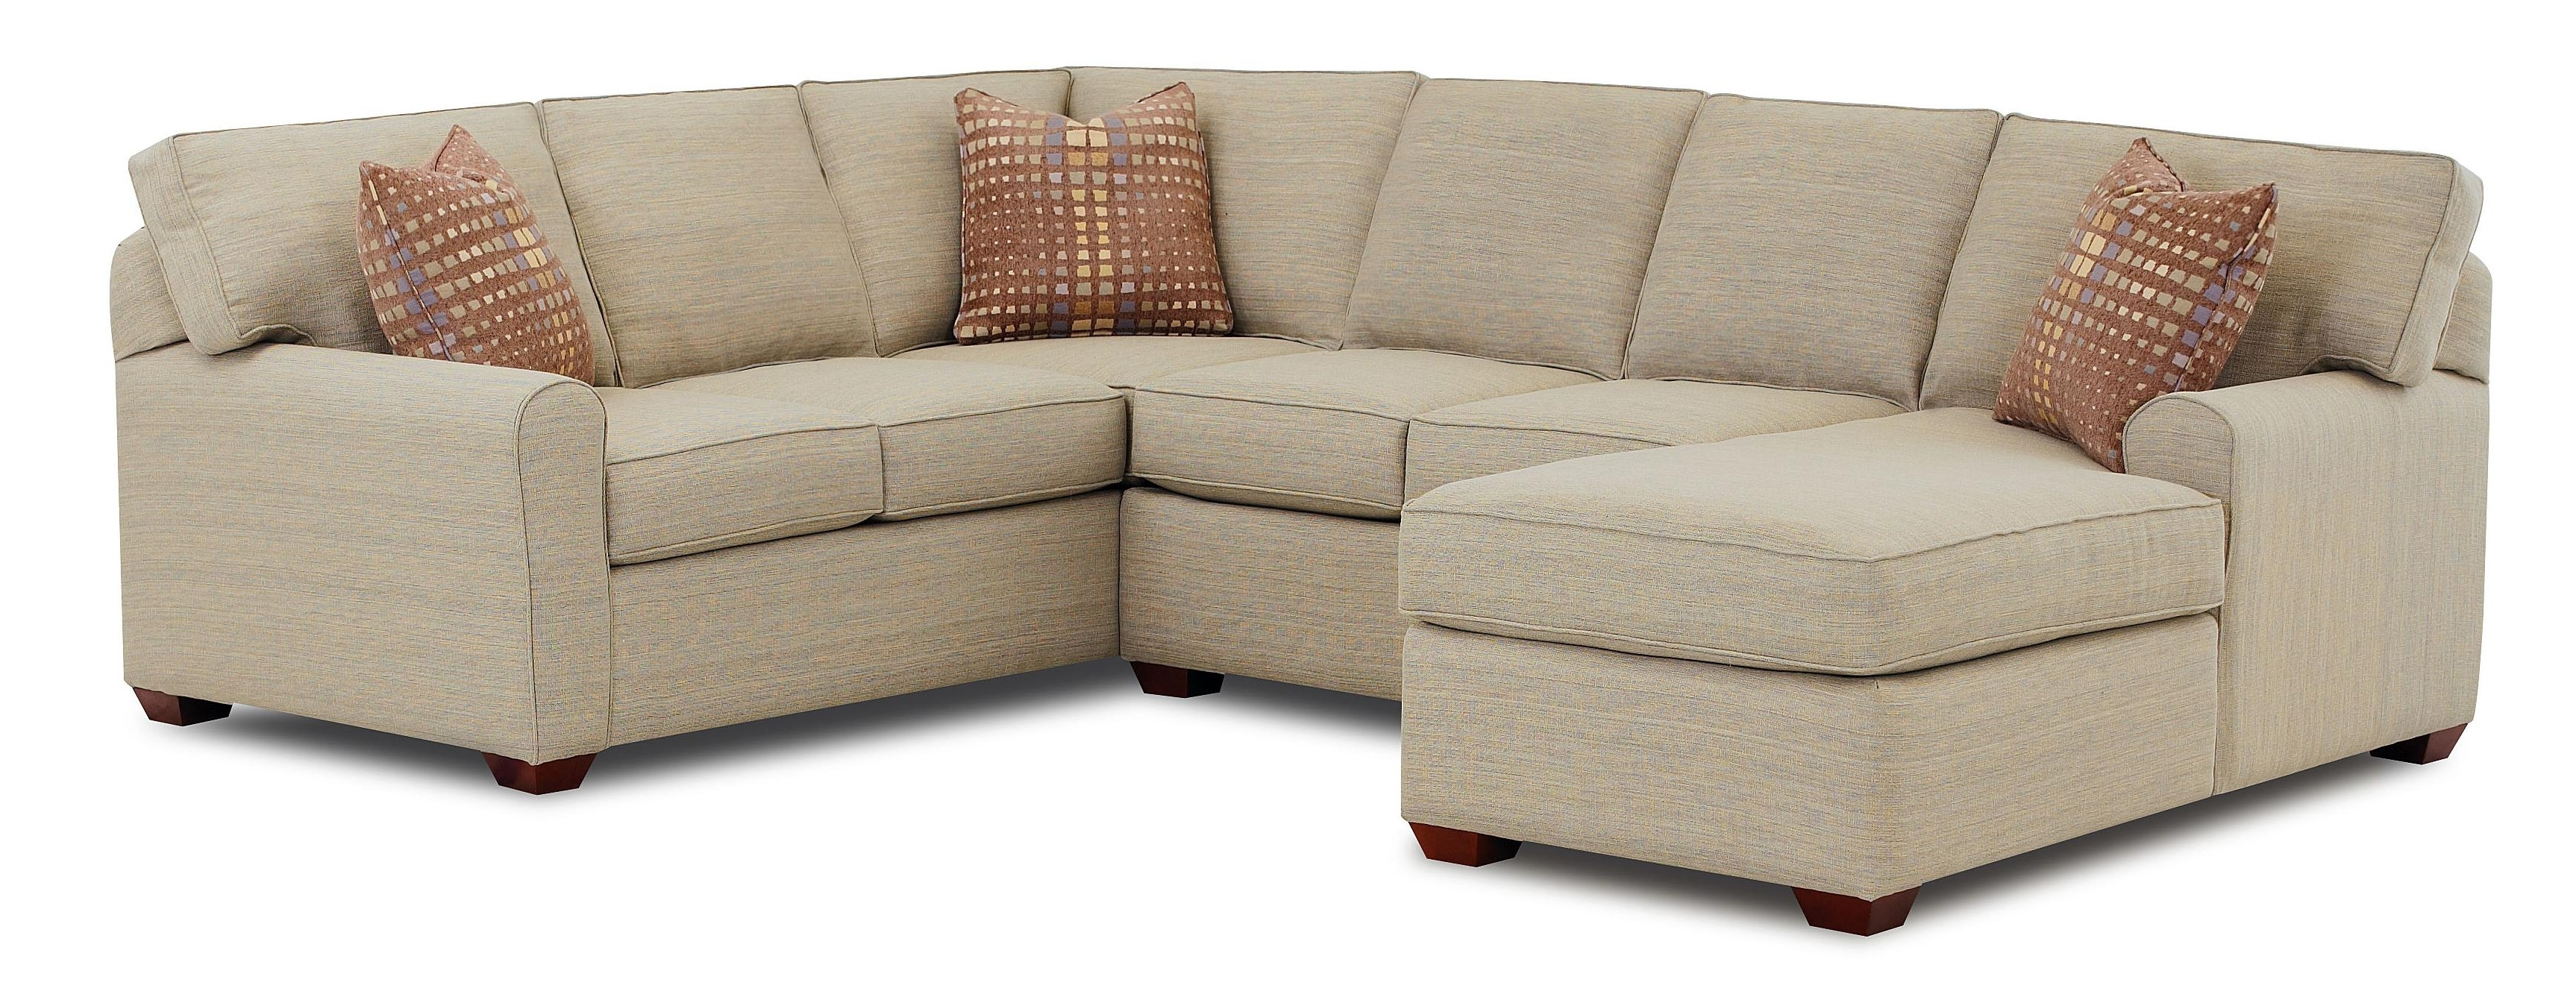 Well Known Sofa ~ Comfy Sectional Sofa With Chaise Master Emer1020 Sectional Inside Chaise Couches (View 14 of 15)